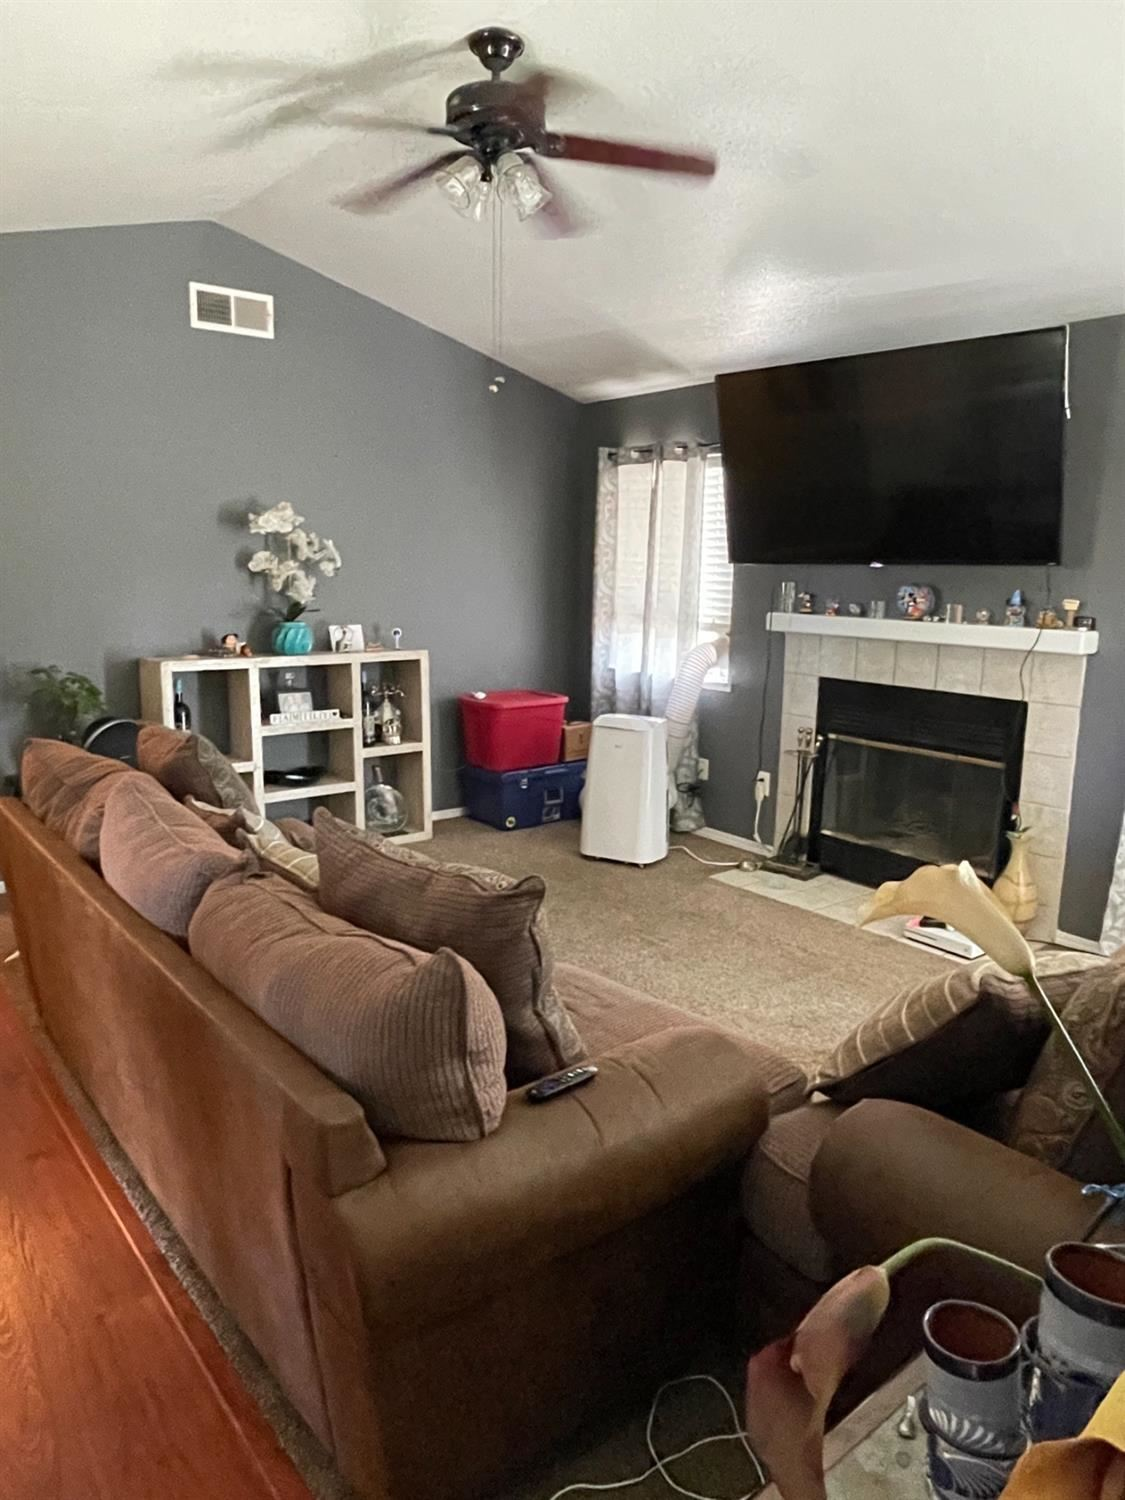 Photo of 632 Hillstock Ct, Patterson, CA 95363 (MLS # 221069667)